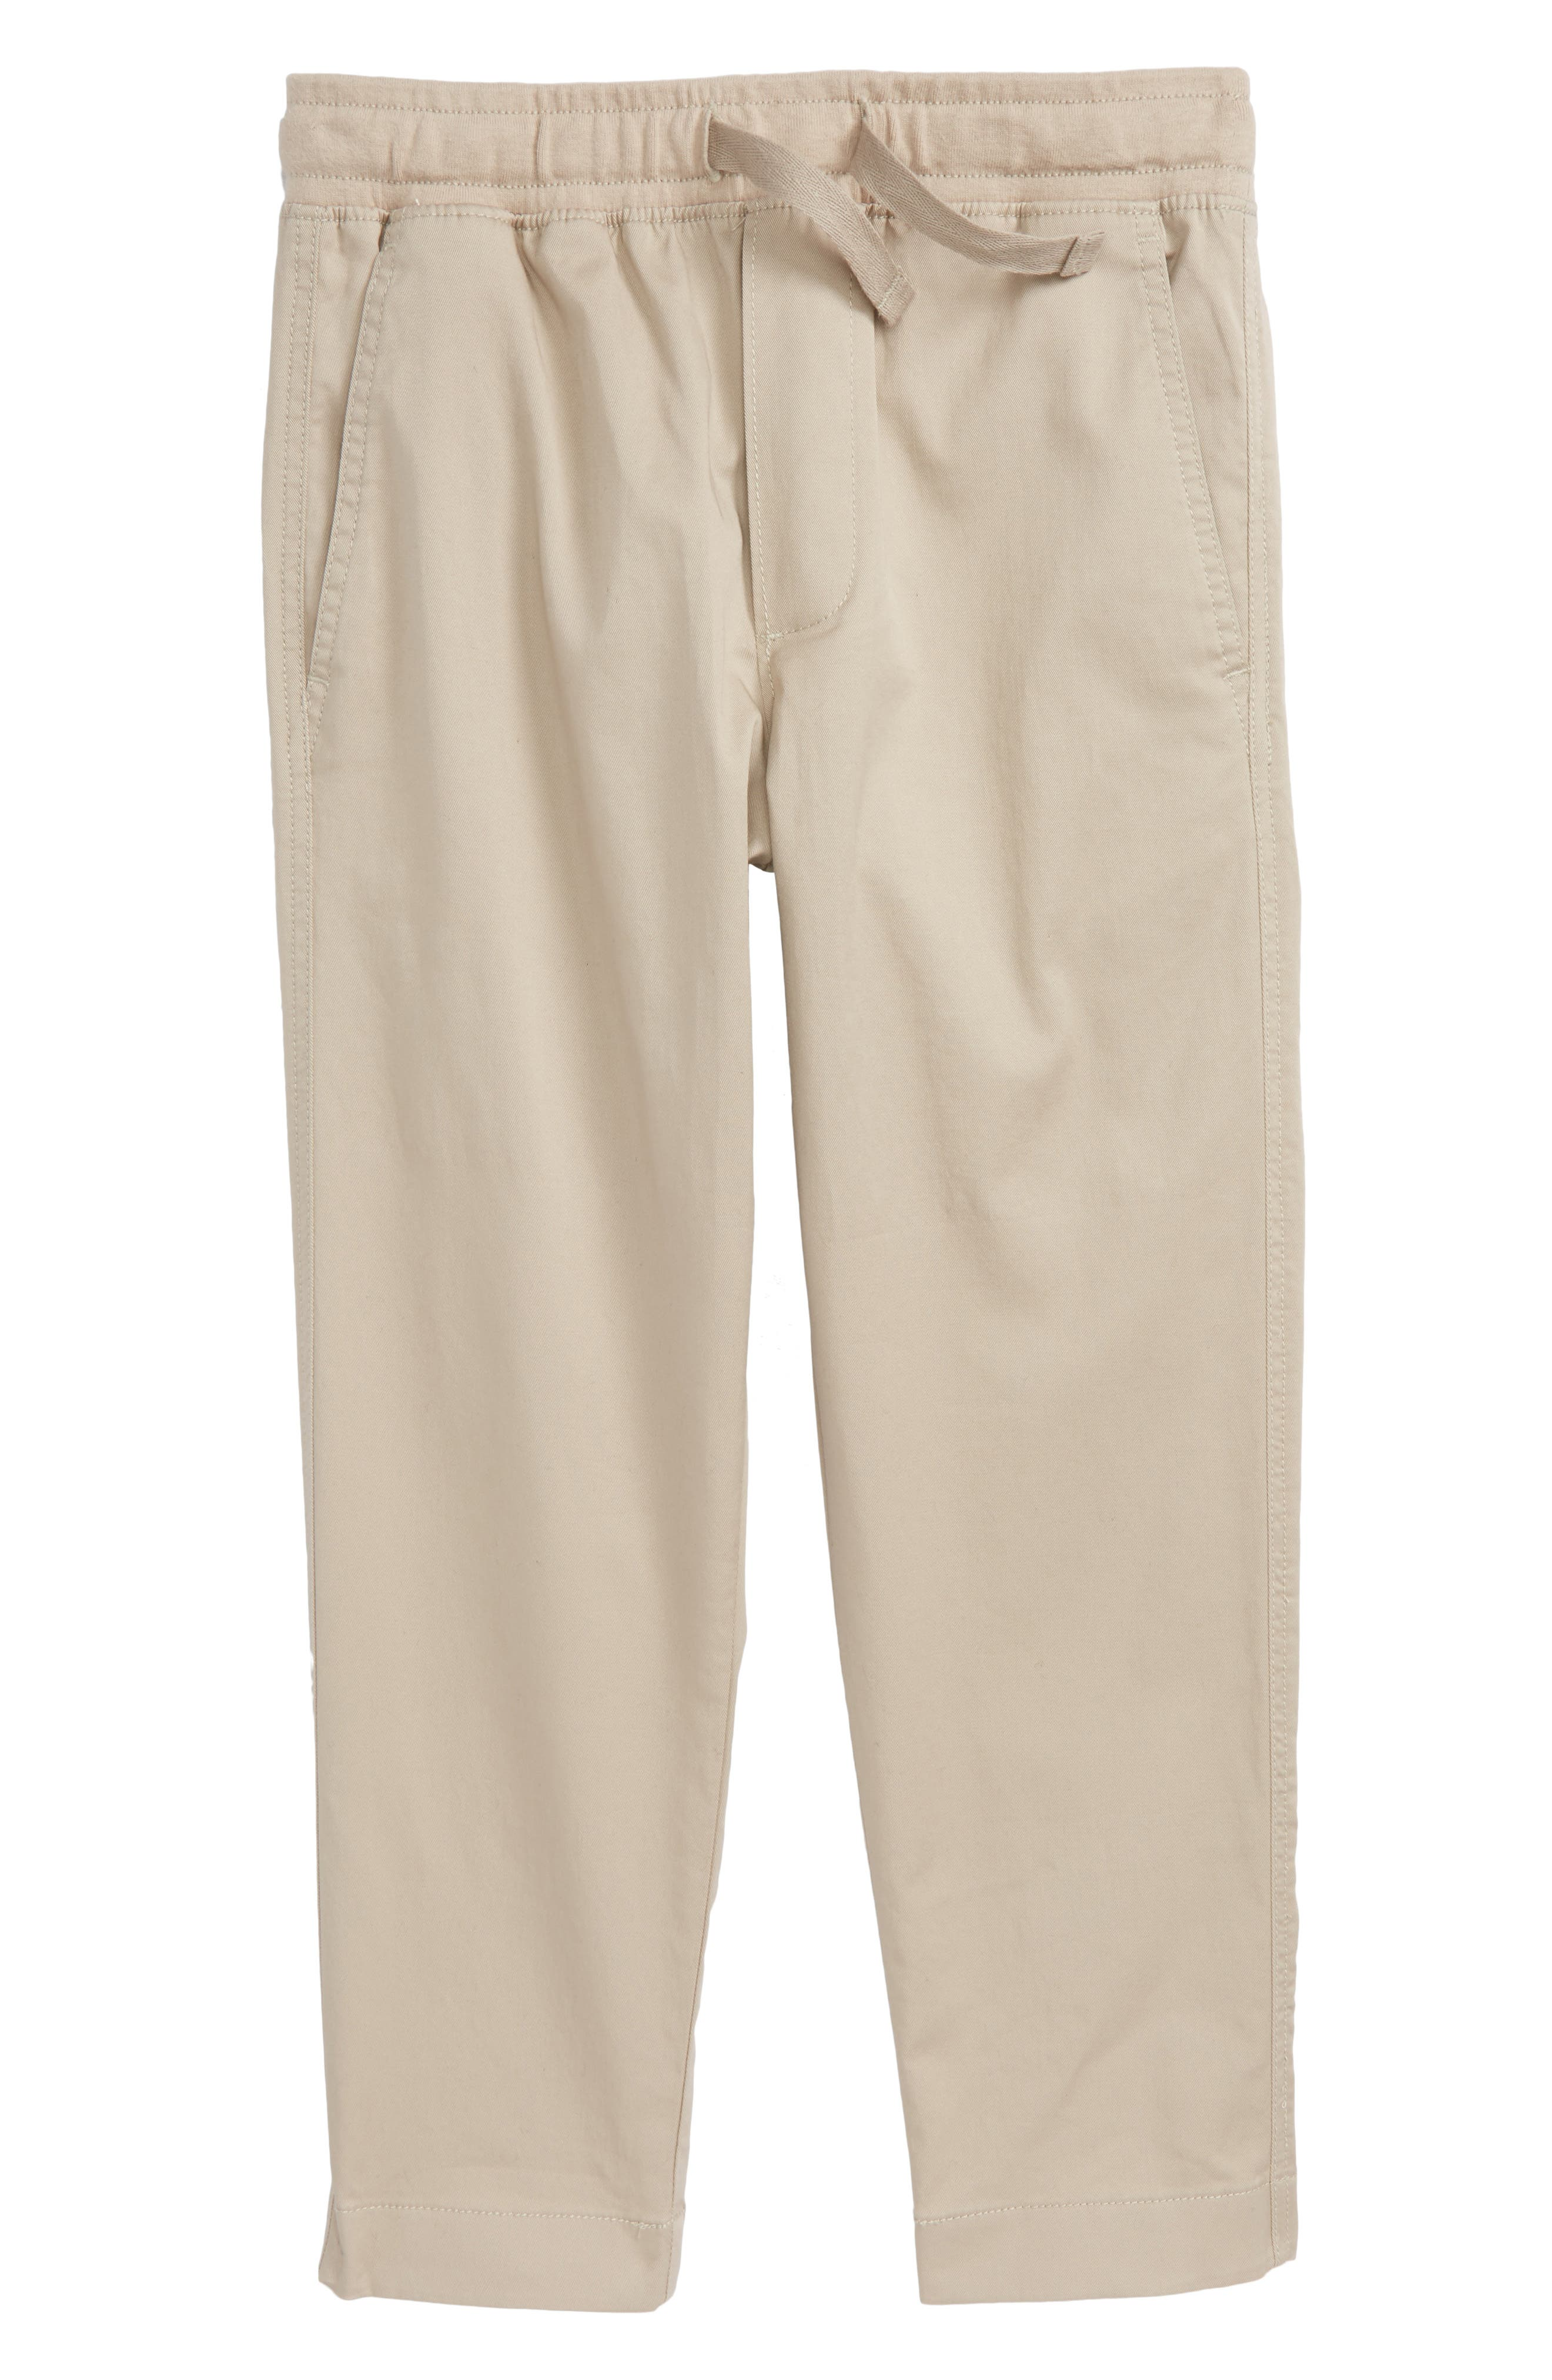 CREWCUTS BY J.CREW Pull On Pants, Main, color, KHAKI